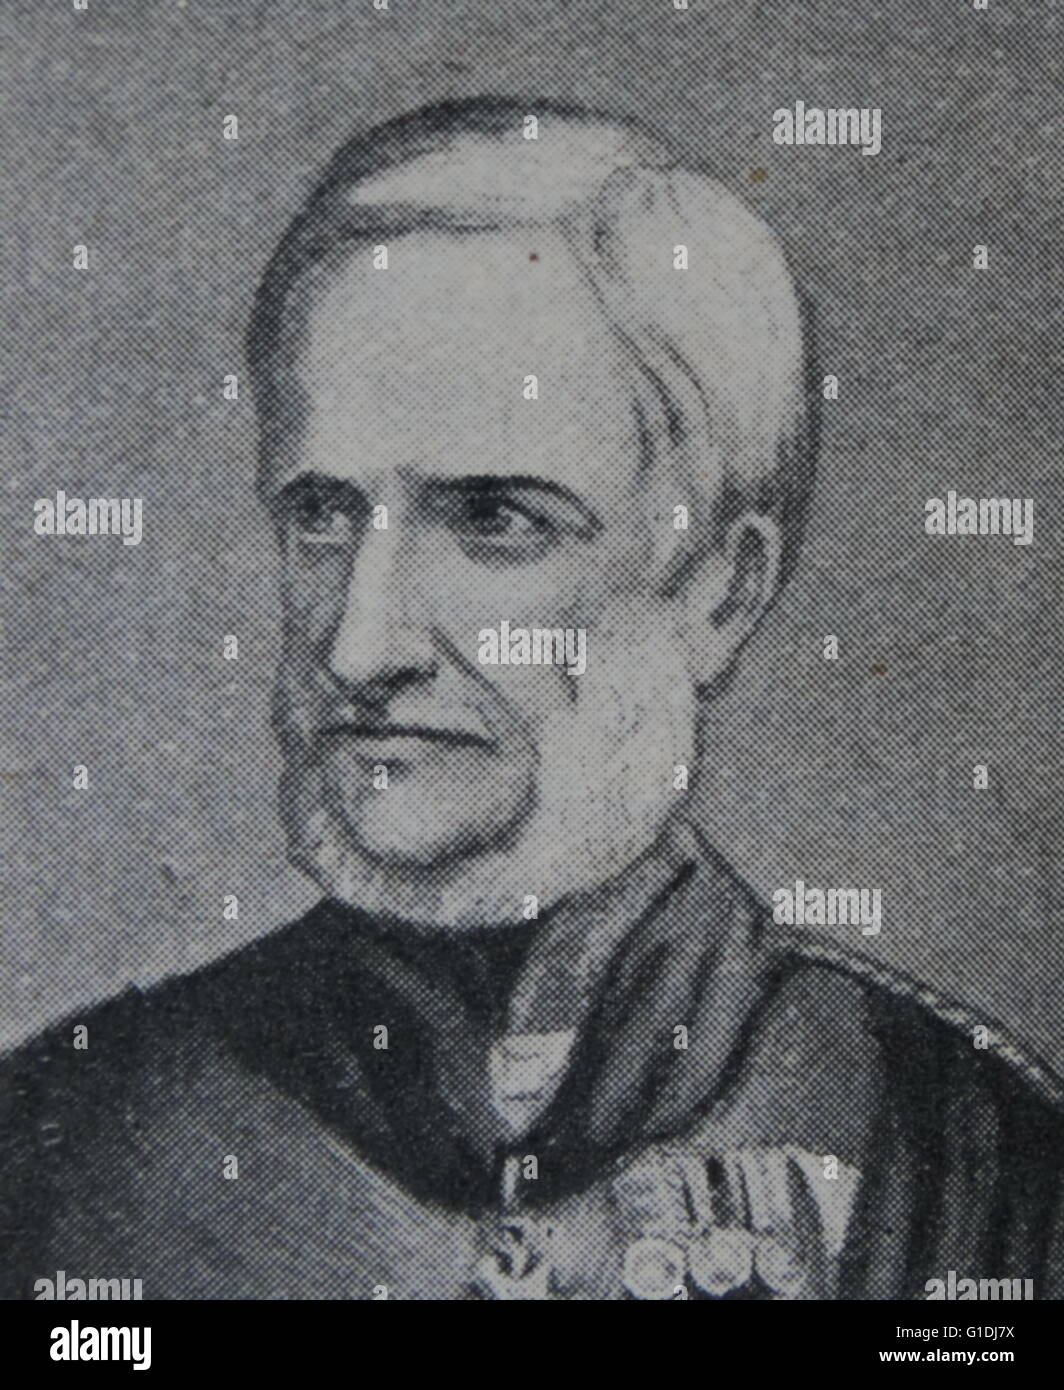 a biography of barry st leger a british general British troops under lieutenant colonel barry st leger were marching eastward across central new york to join with british forces at albany en route, they arrived at fort stanwix (also called fort schuyler now rome, new york) and demanded its surrender.